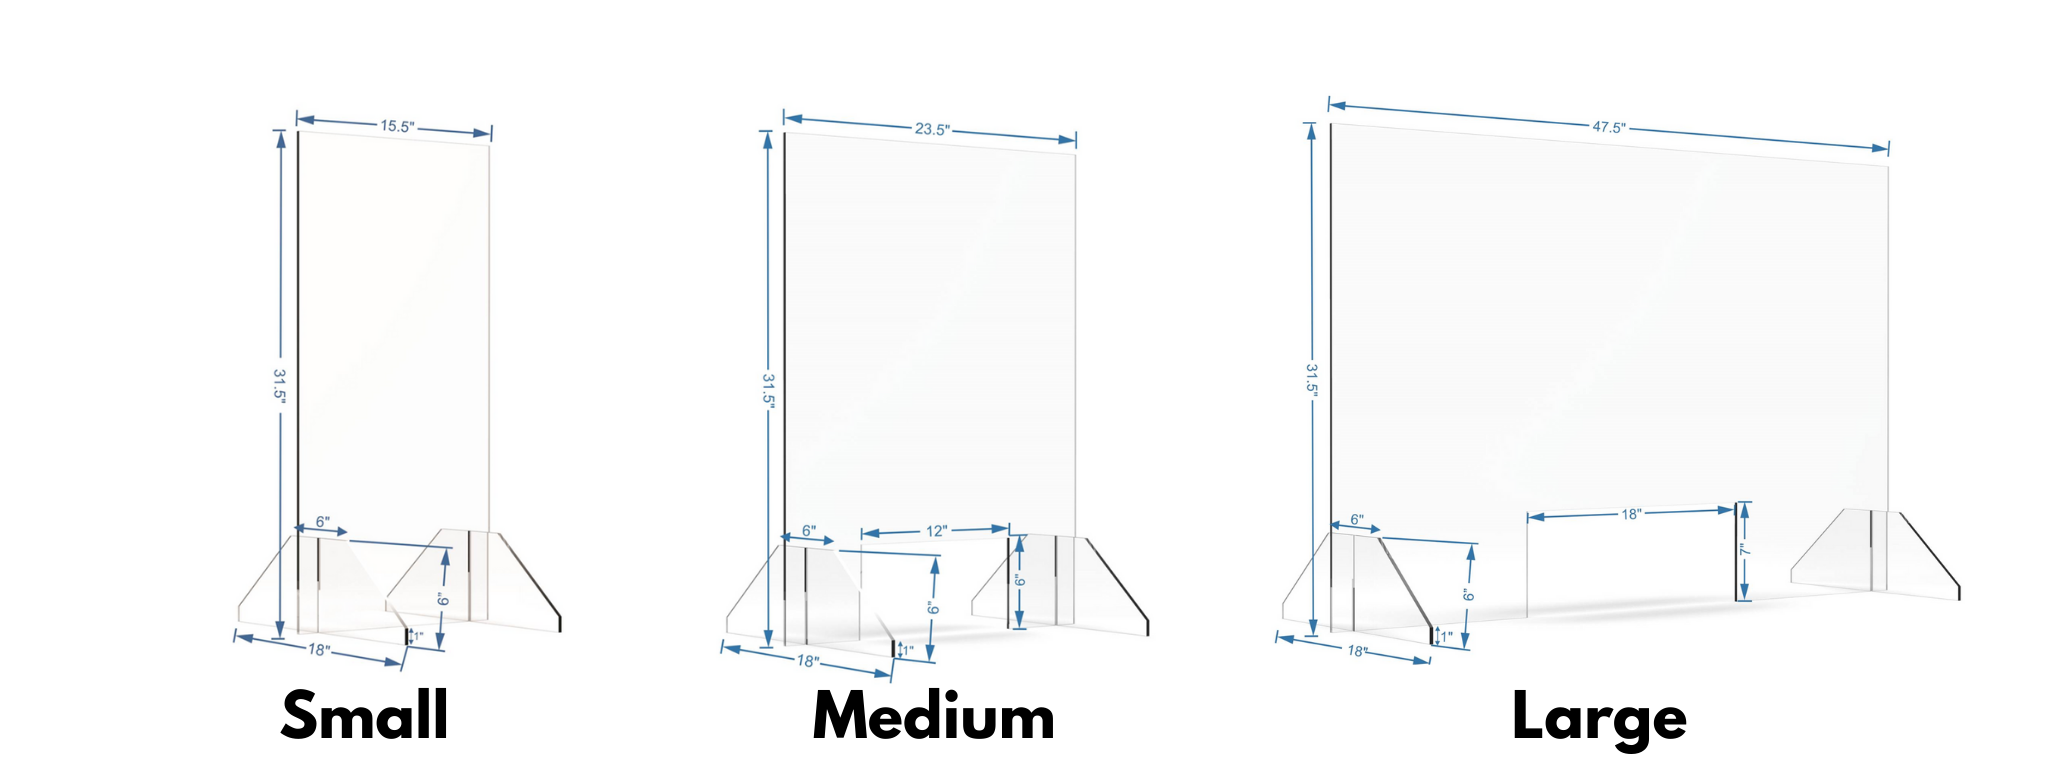 ClearGuard 3 Barriers Sm, Md, Lg